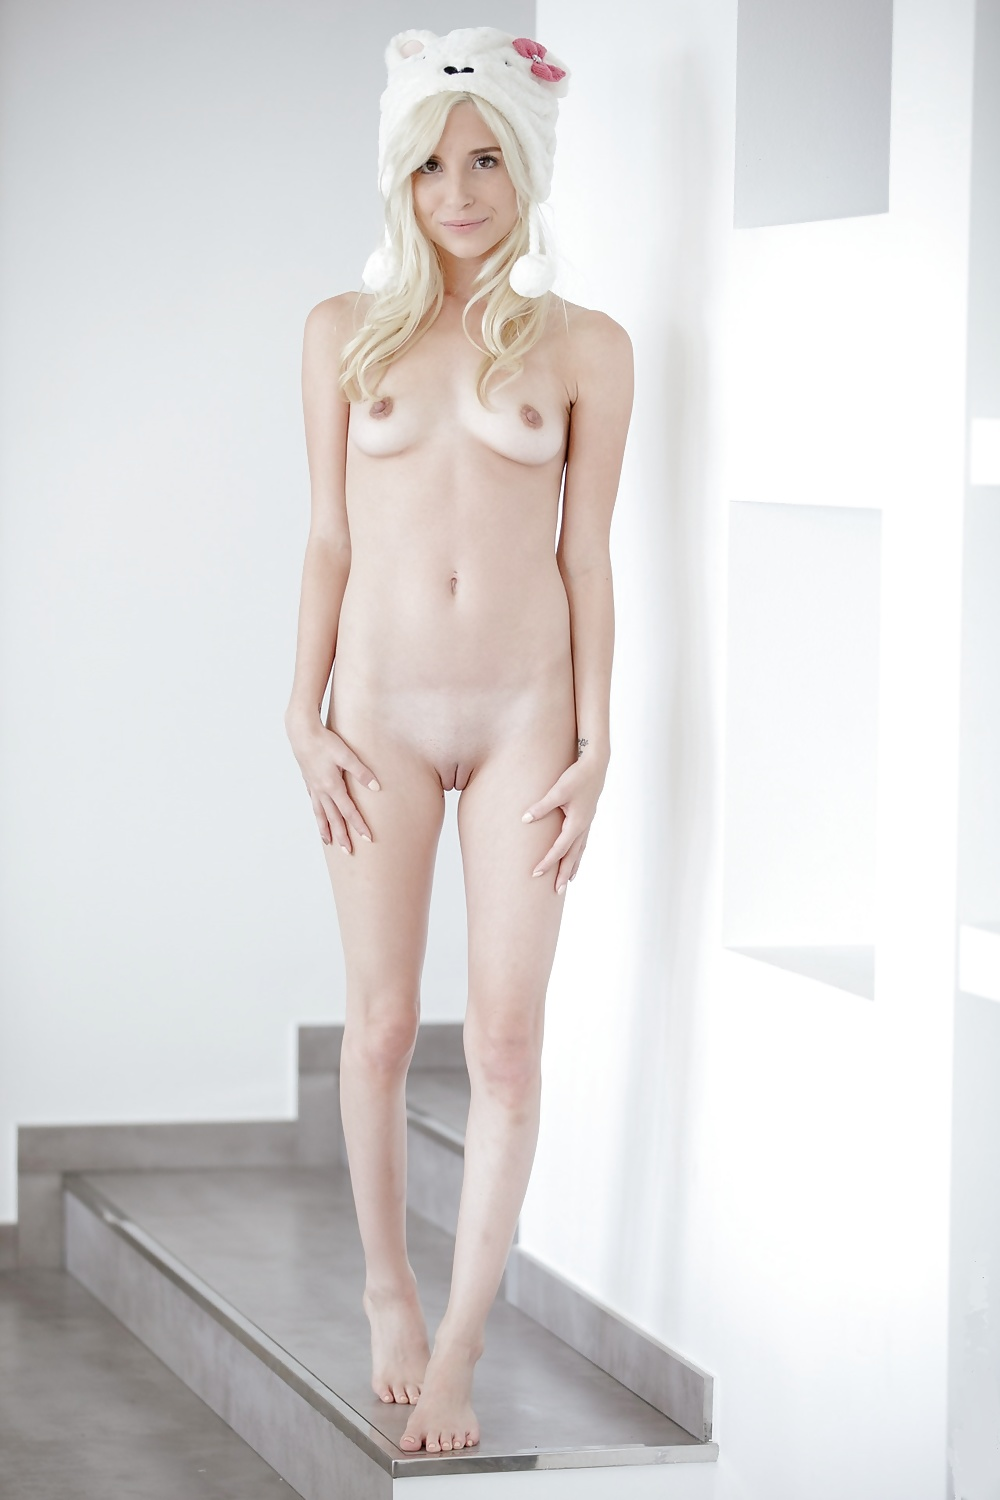 piper-precious-naked-tiny-little-naked-chicks